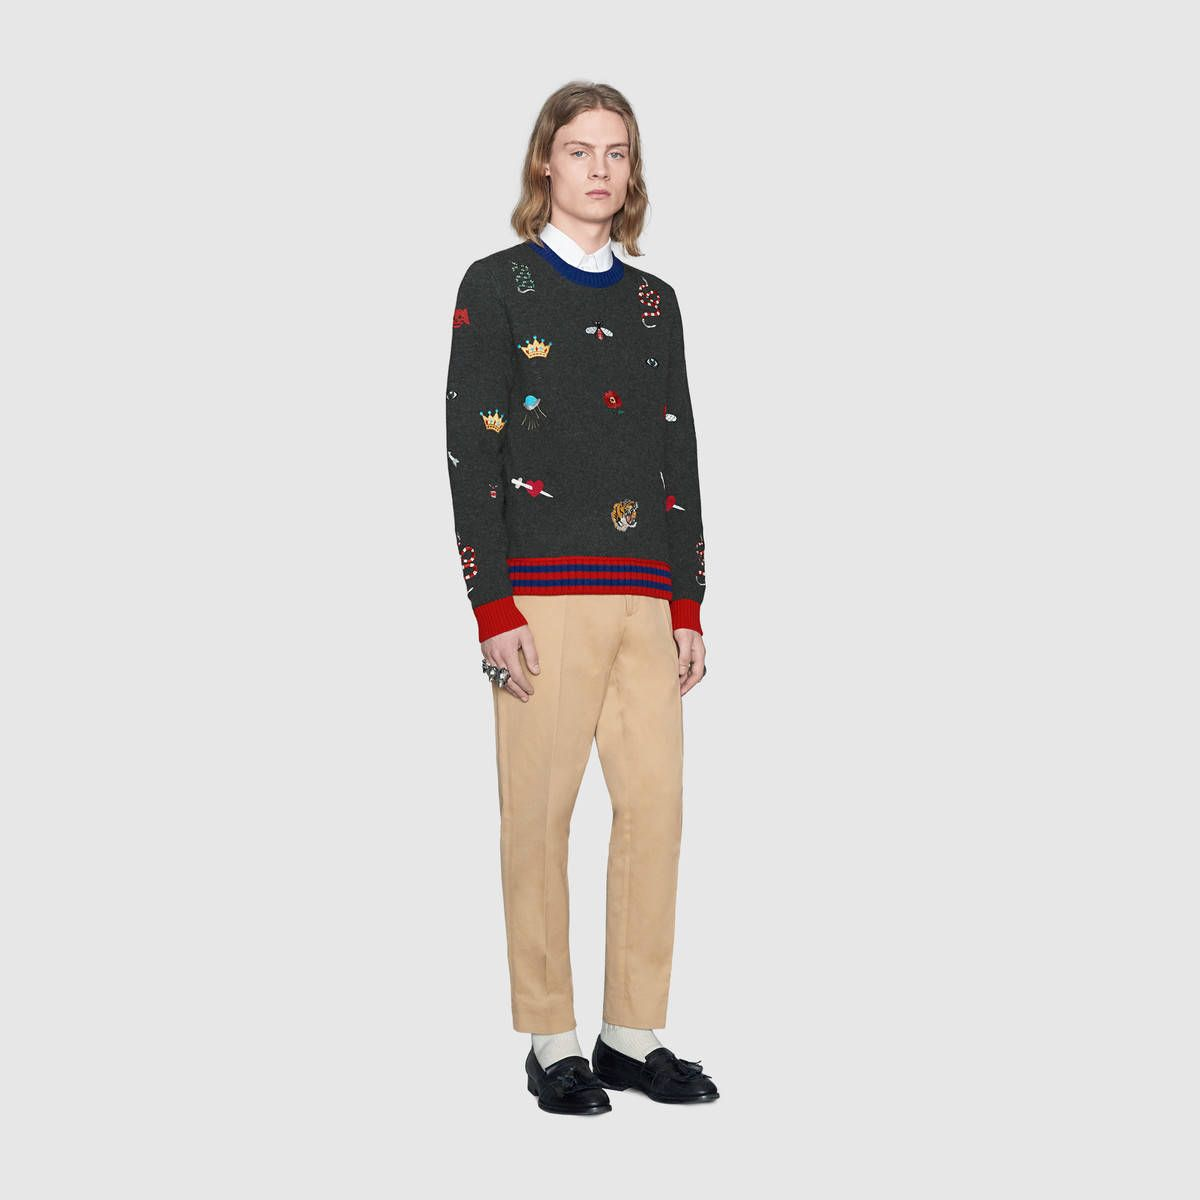 Gucci Wool sweater with embroideries Detail 2   Mens ...